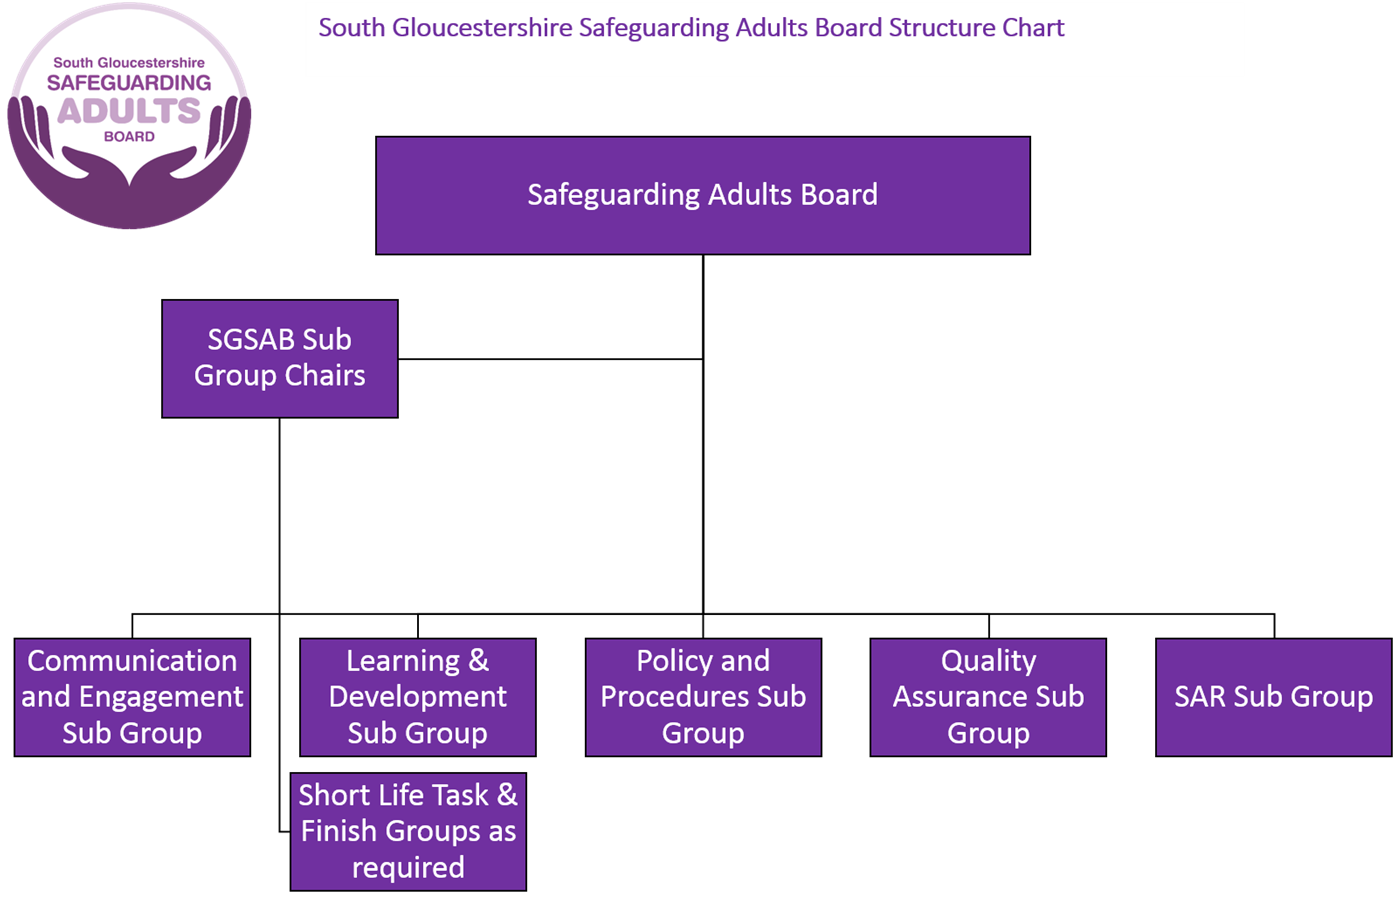 South Gloucestershire Safeguarding Adults Board structure chart